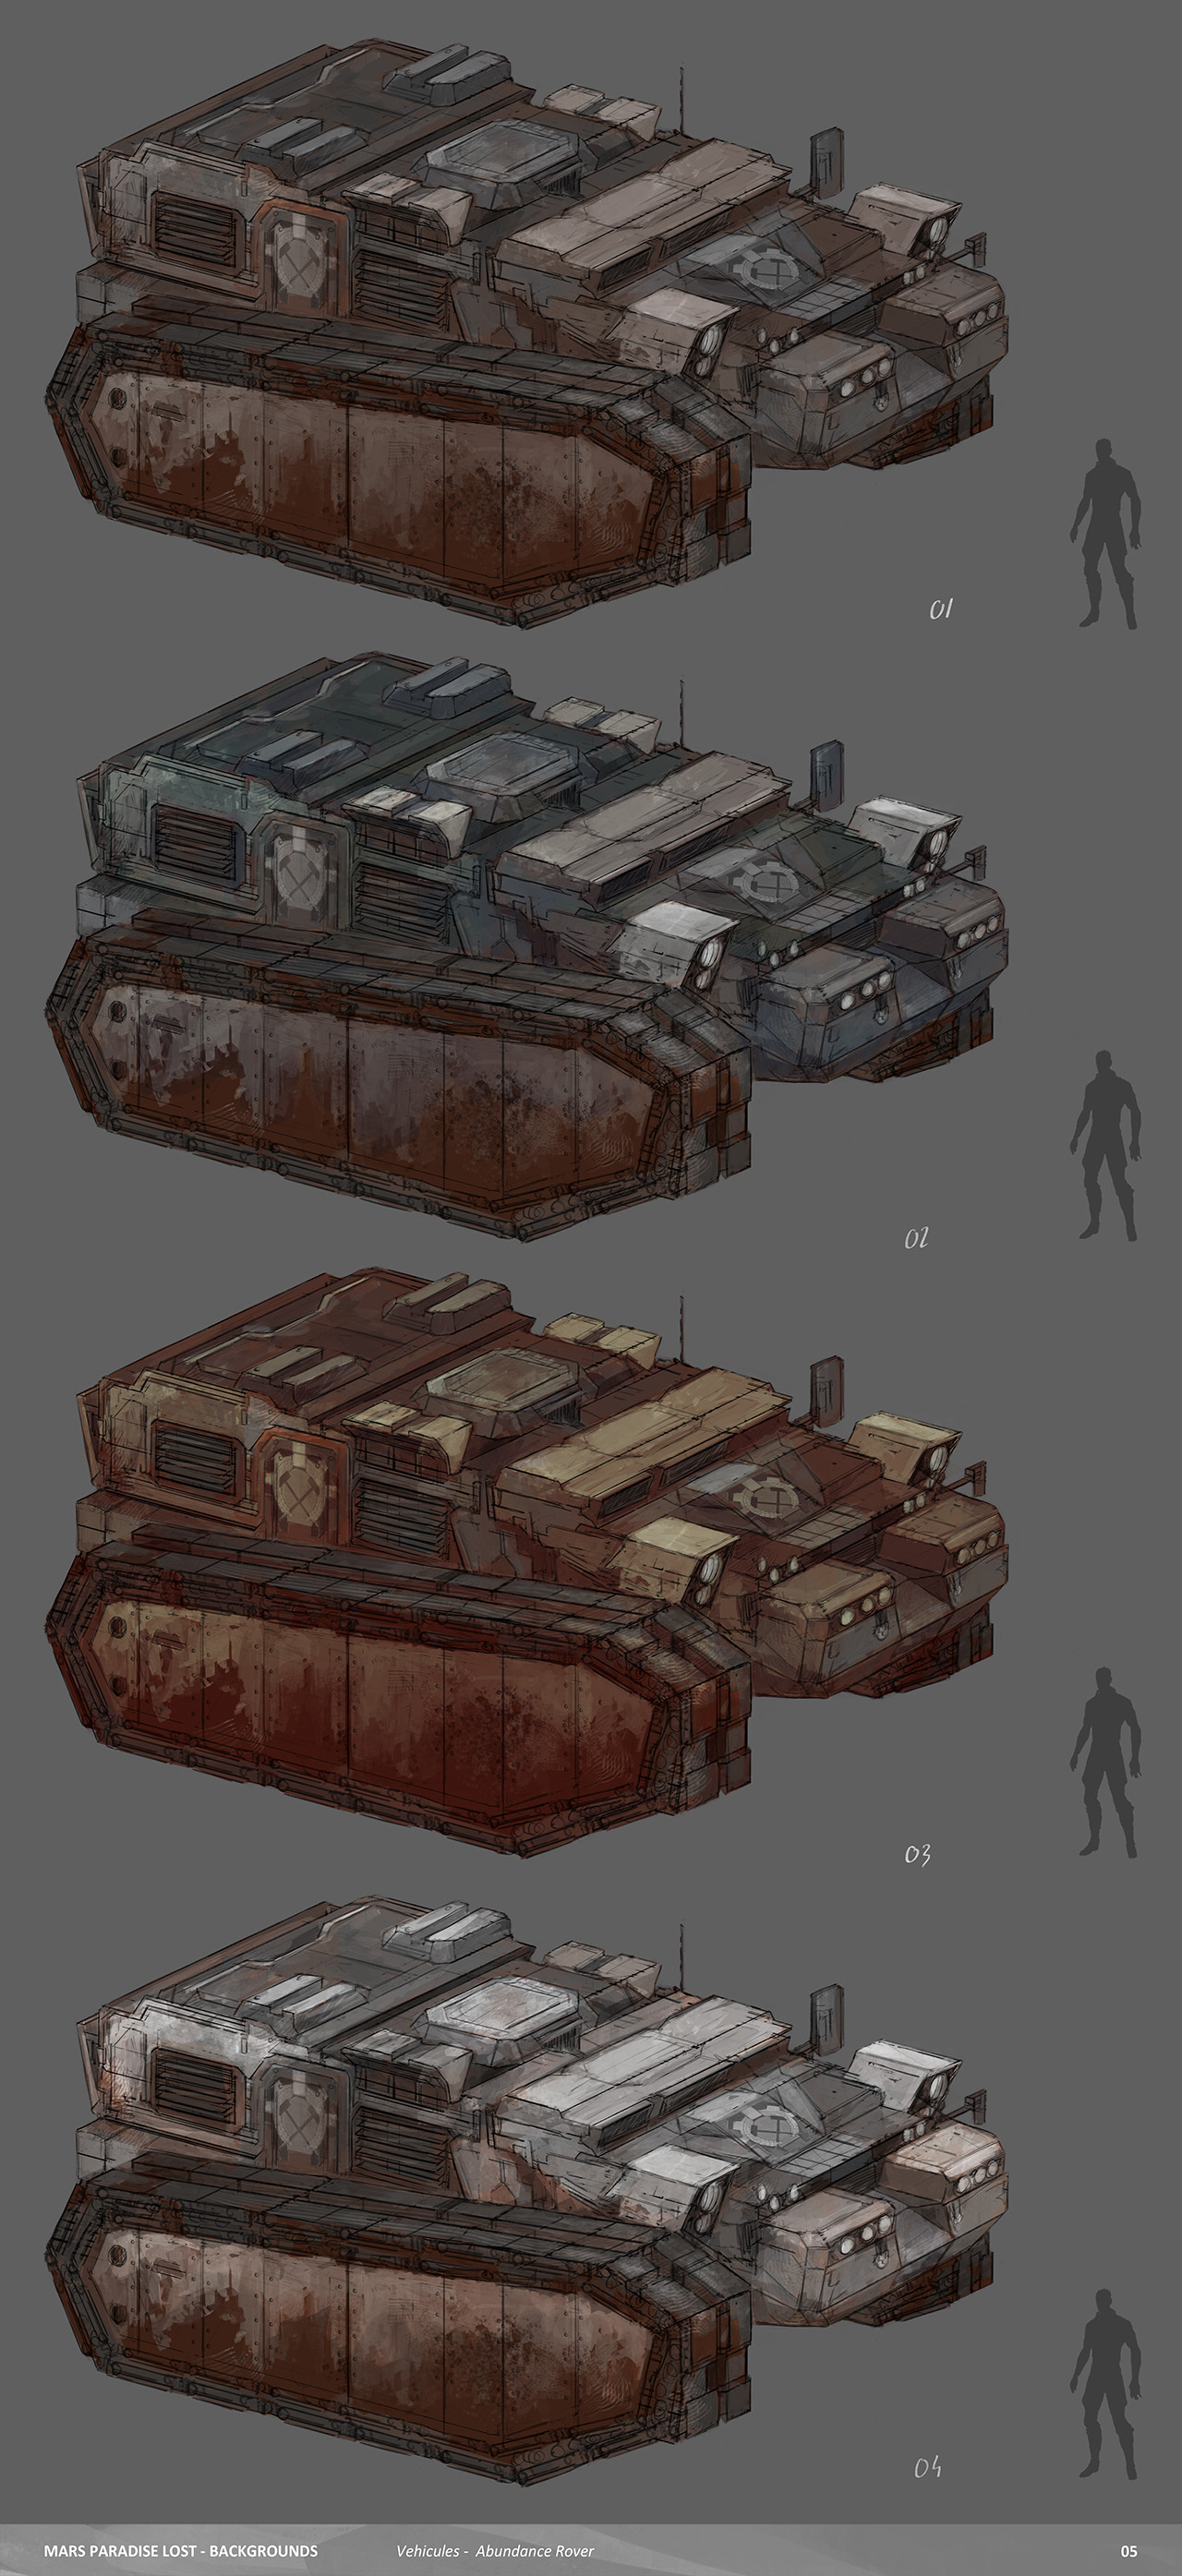 Alexandre chaudret mpl backgrounds vehicules rover05